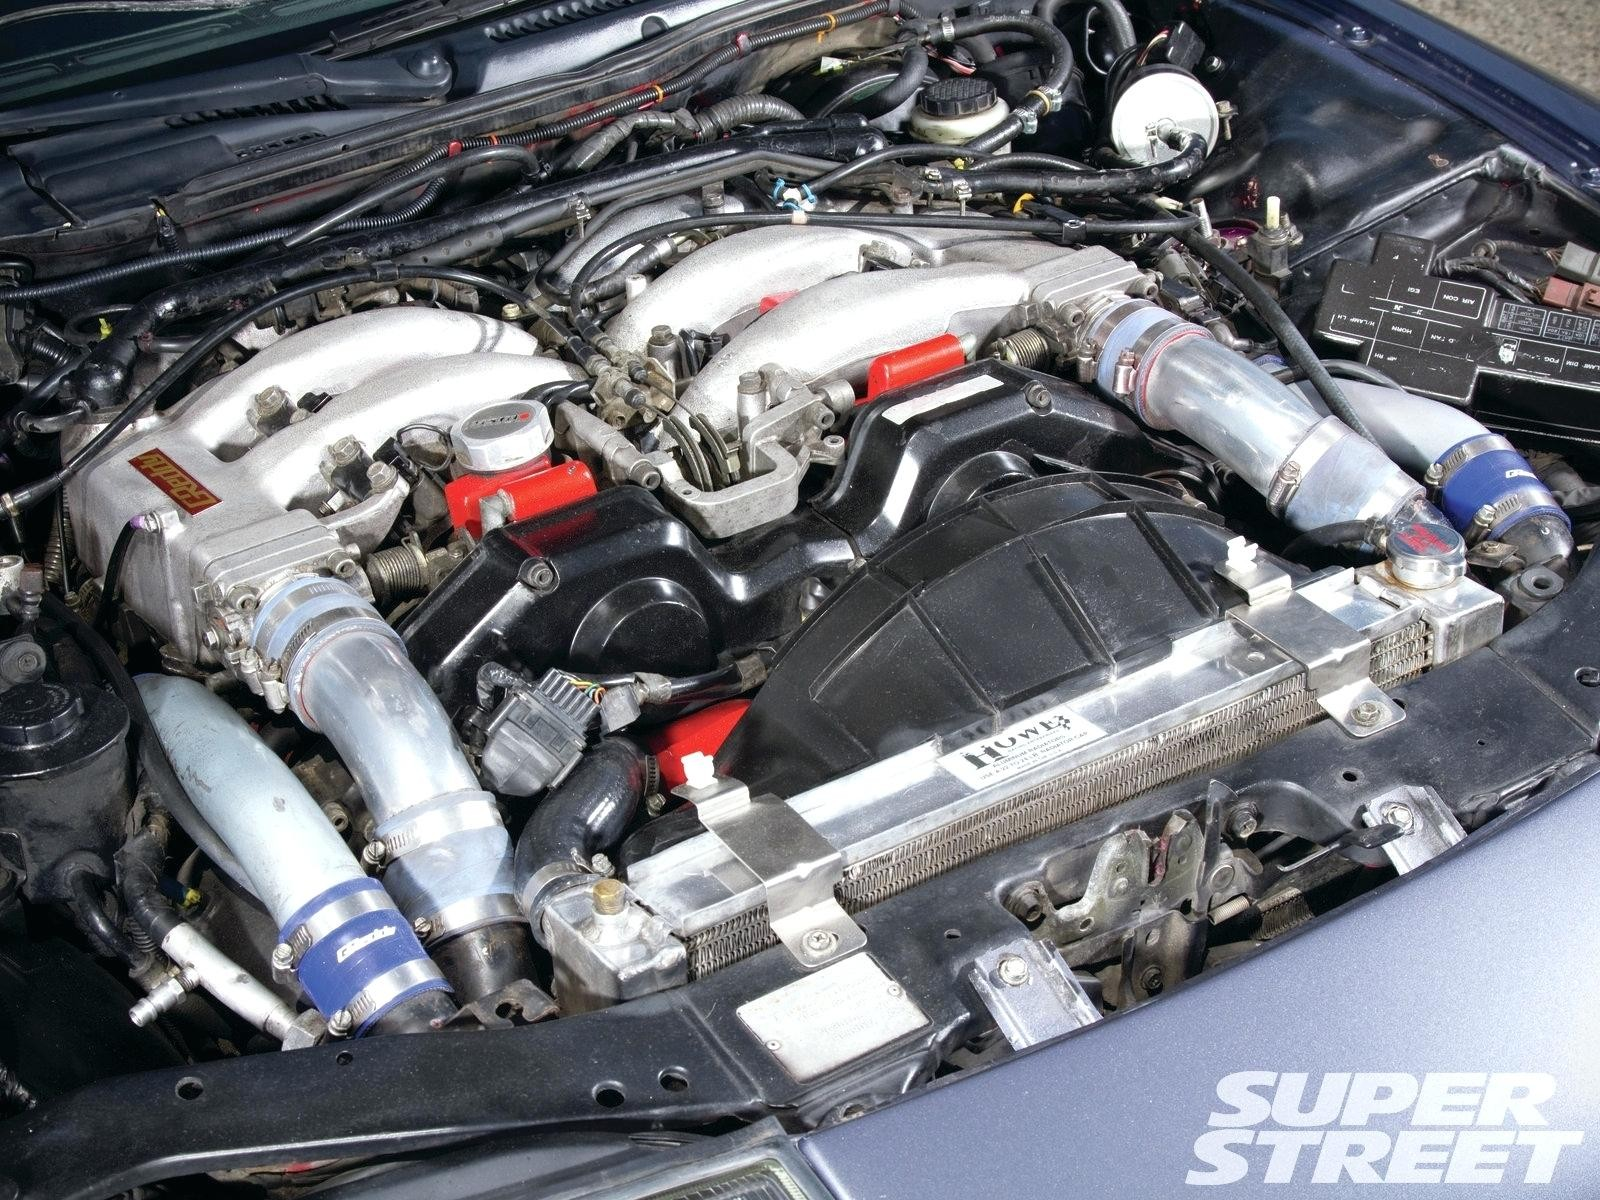 Nissan 300zx Engine Diagram 1995 Nissan 300zx Fuse Diagram Delighted Wiring  Contemporary Radio Of Nissan 300zx